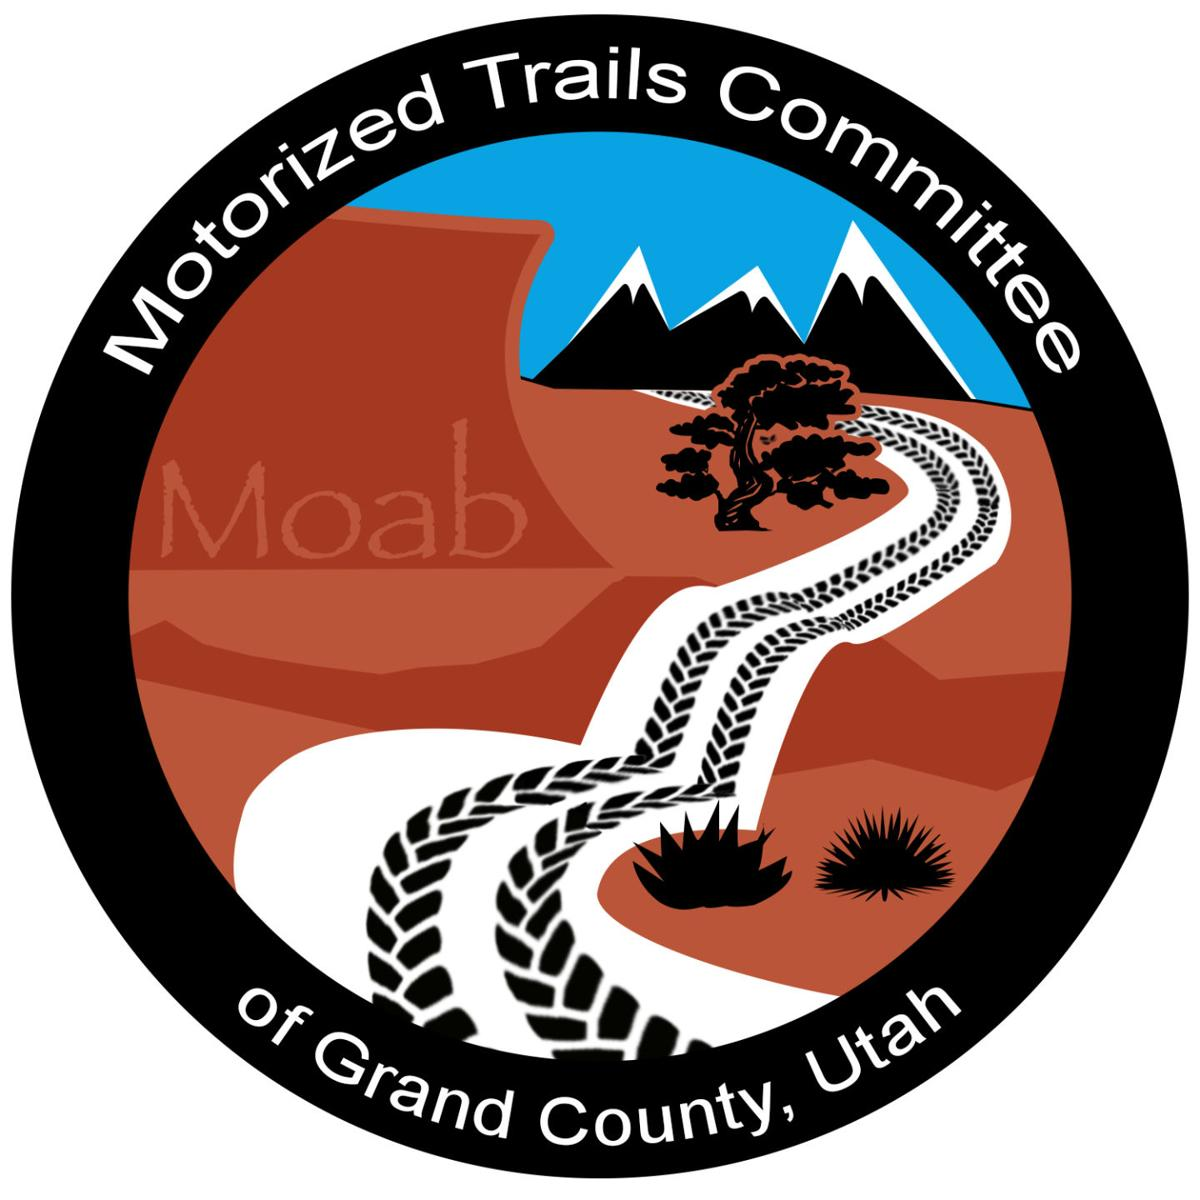 Motorized Trails Committee